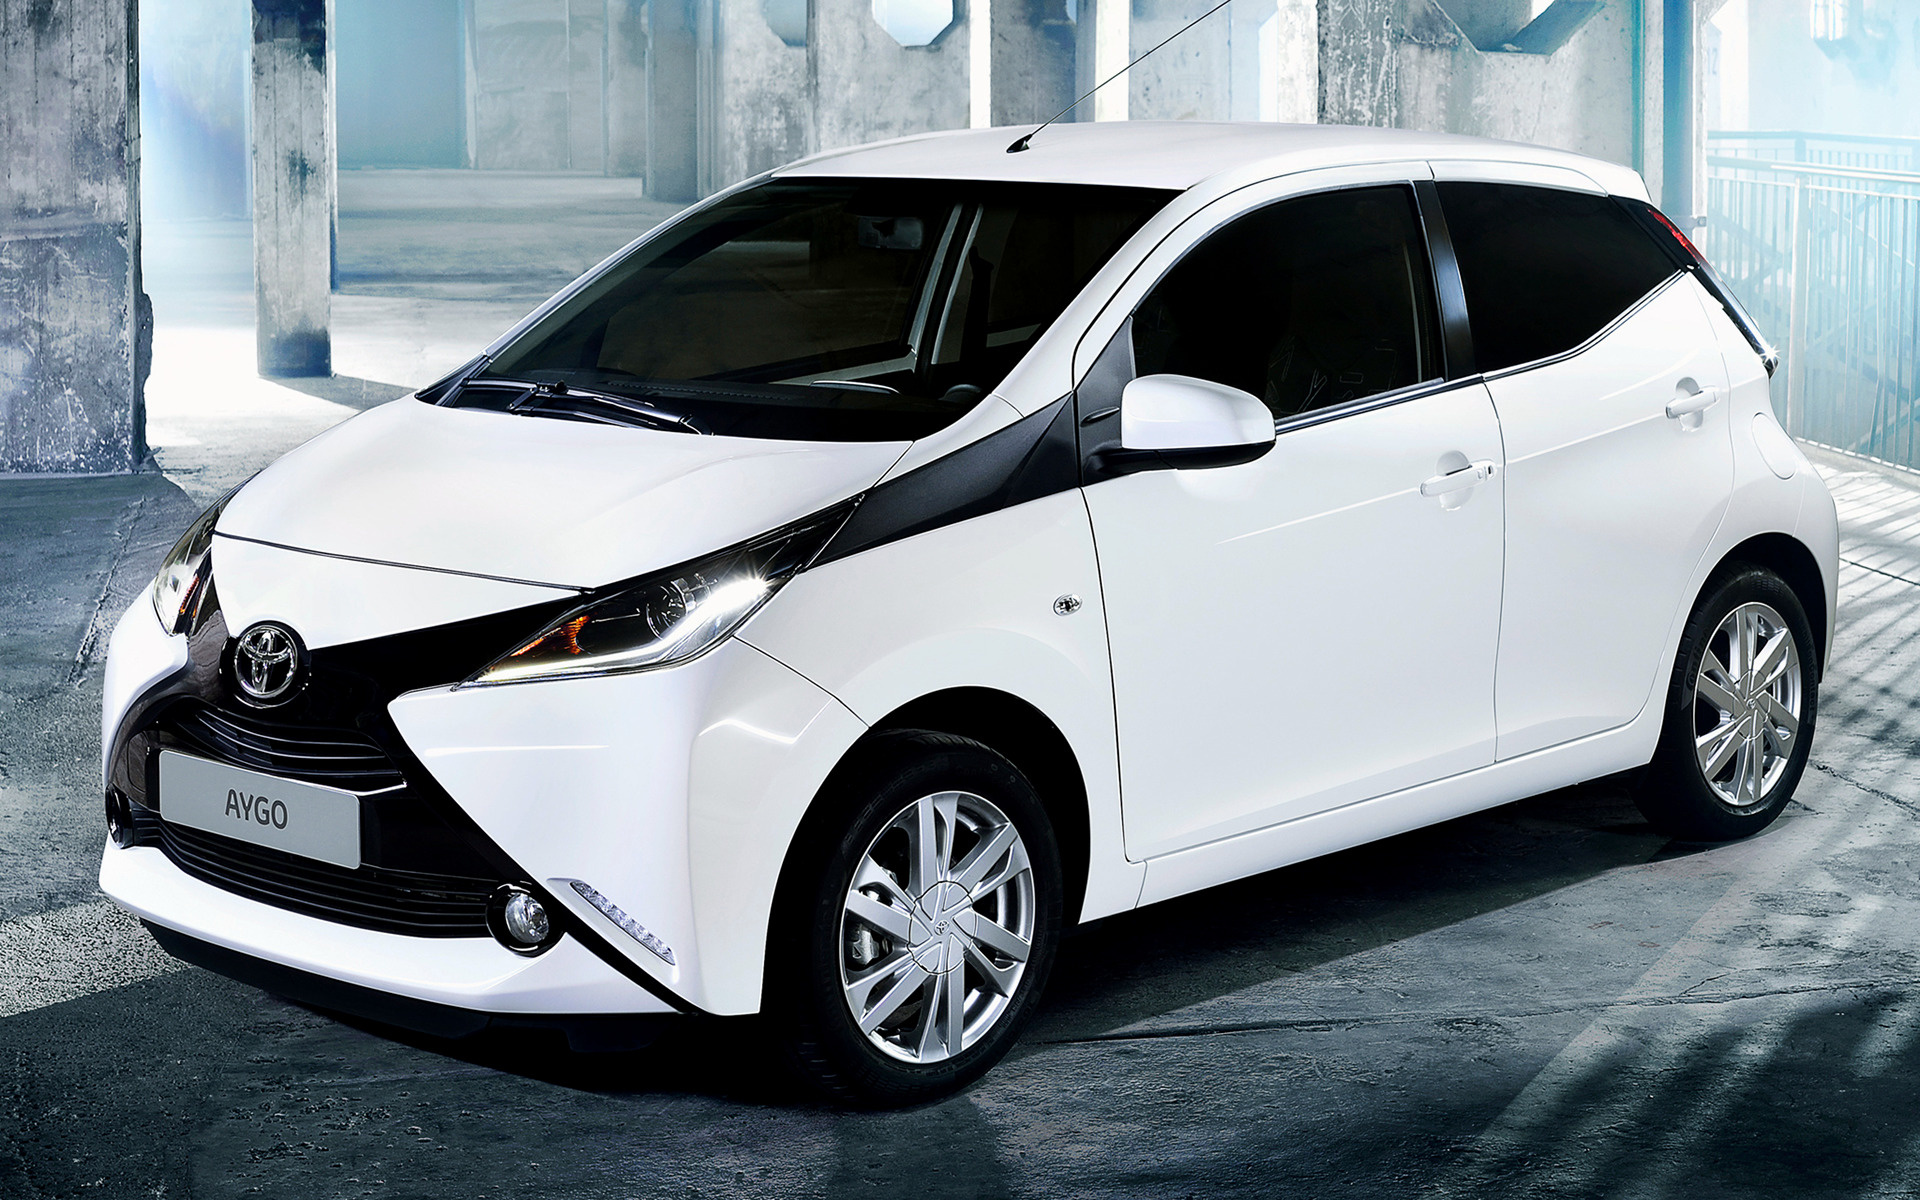 All Car Brands >> Toyota Aygo x-play 5-door (2014) Wallpapers and HD Images - Car Pixel